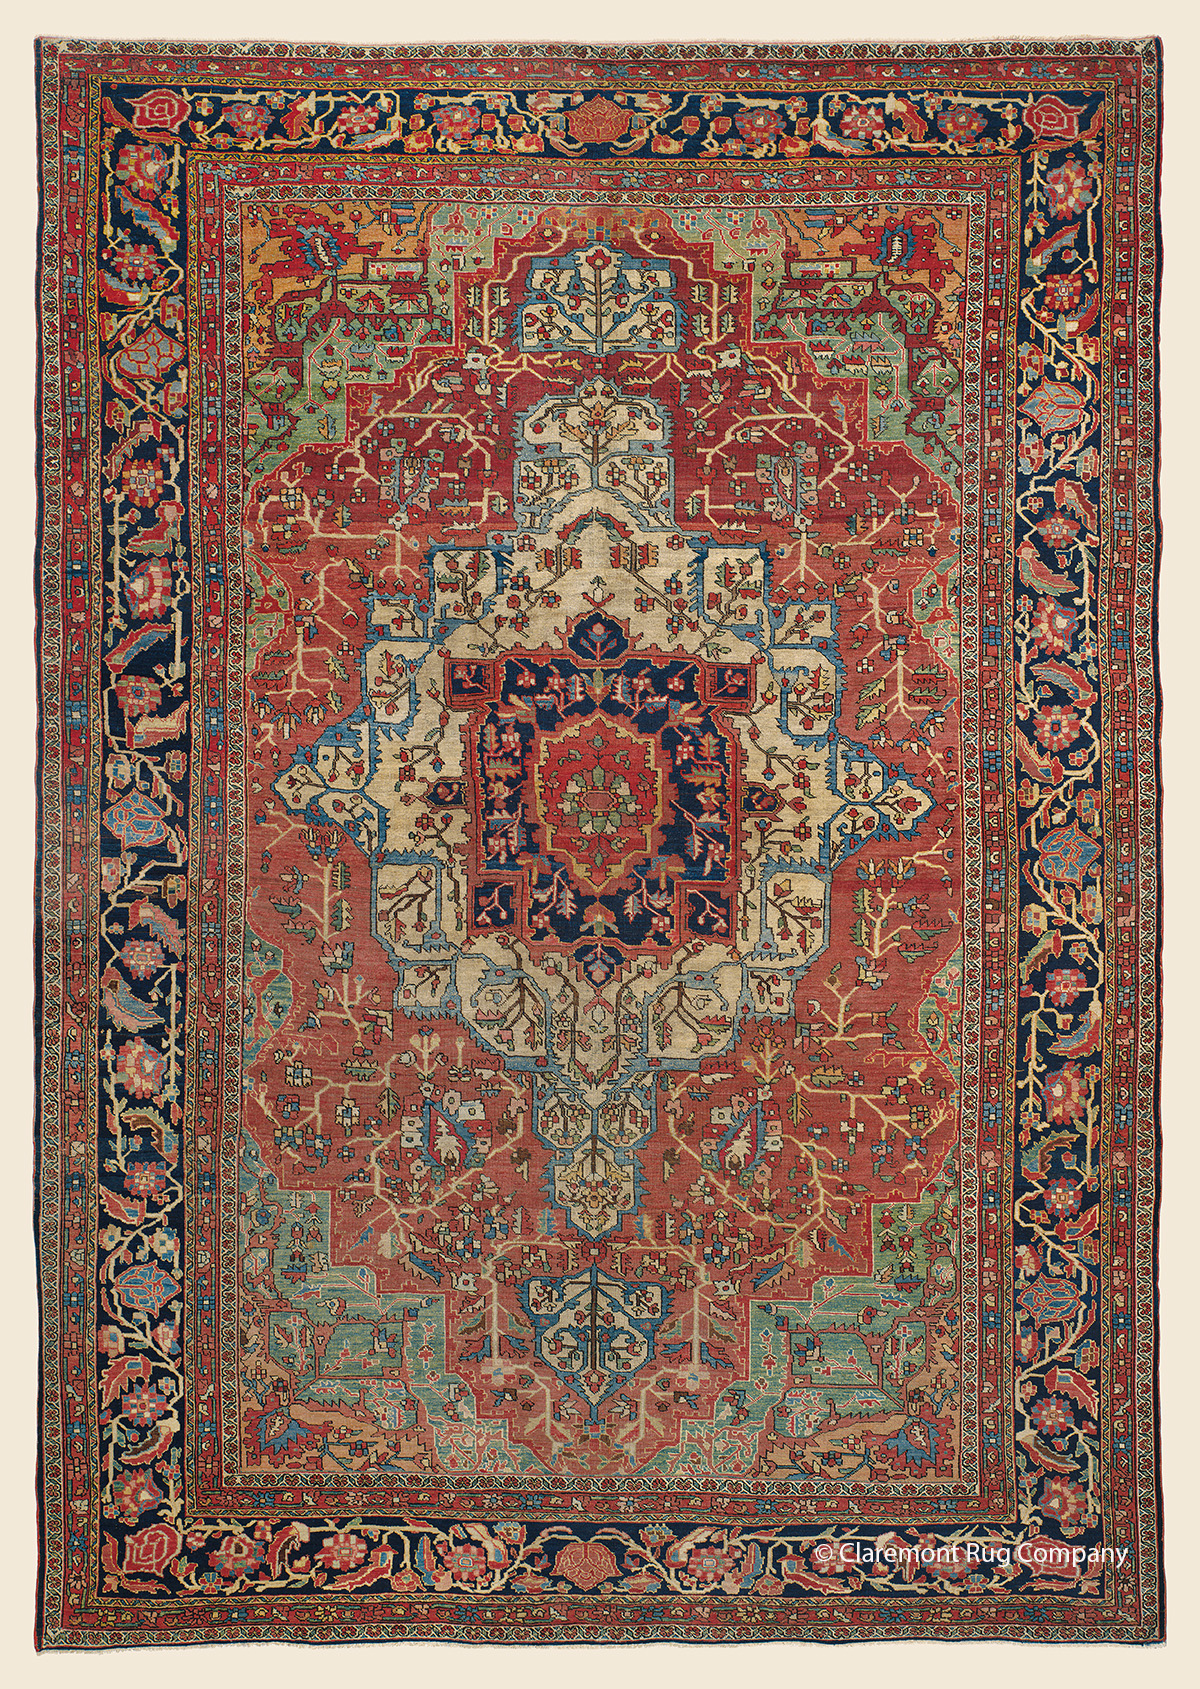 19th century  Antique Ferahan Sarouk Oriental Carpet in Apple Green 8ft x 12ft